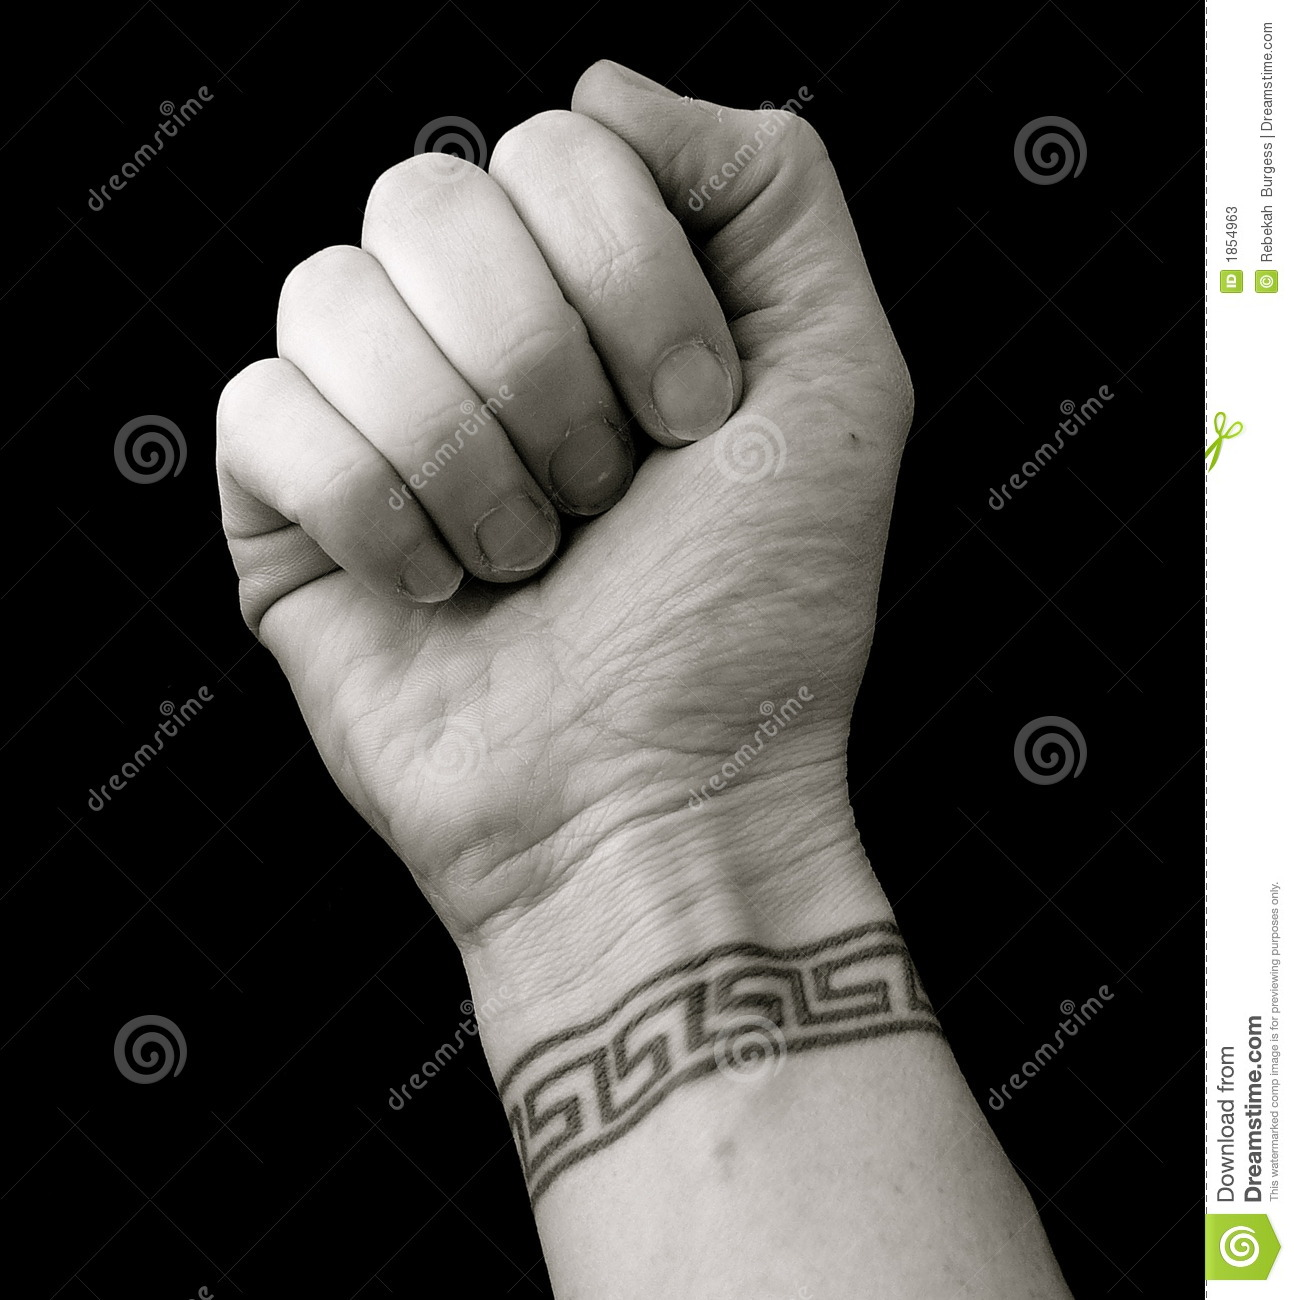 Stock Photos: Fist With Wrist Tattoo in Greek Key Pattern over Black ...